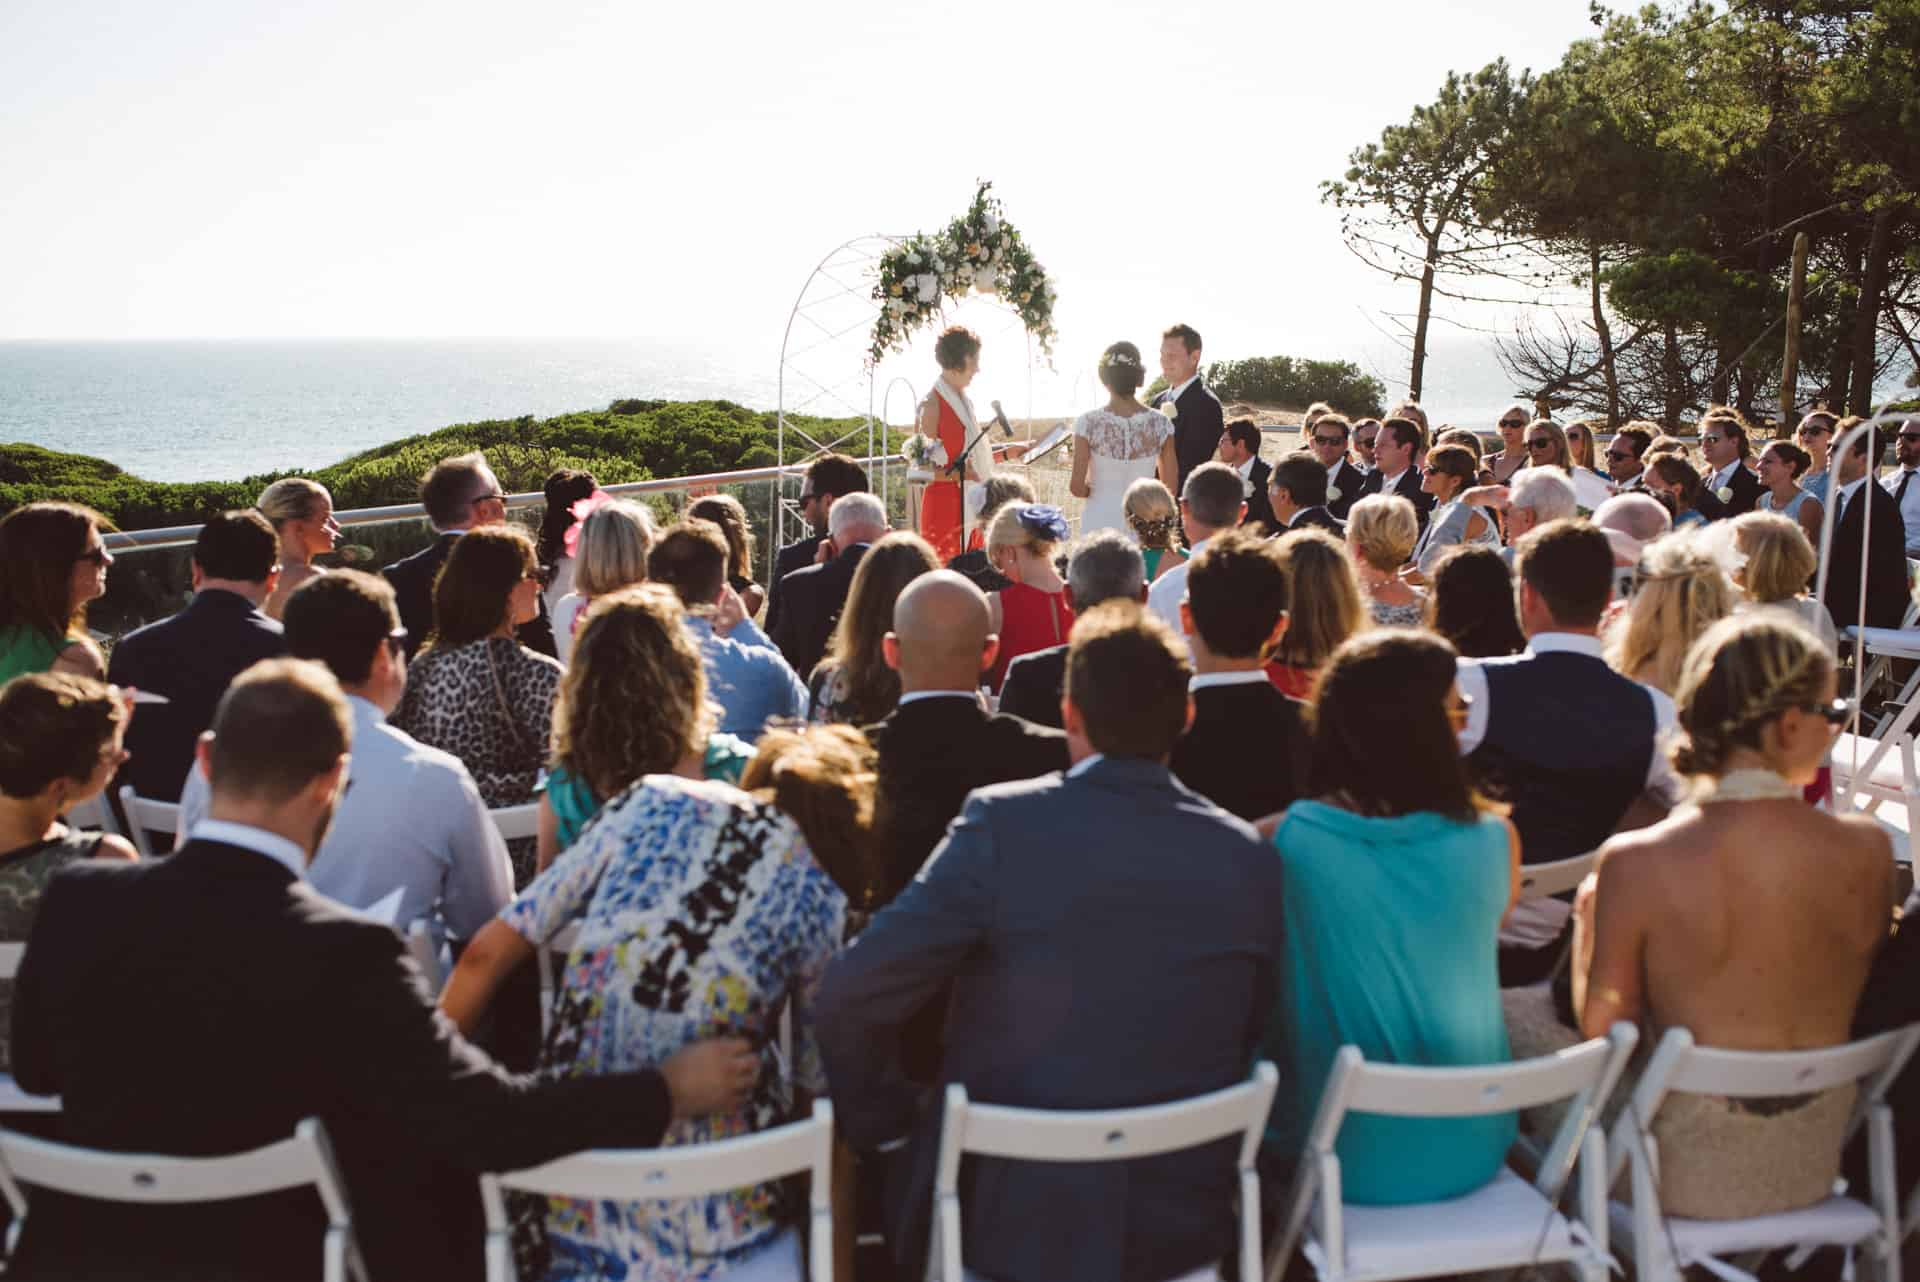 Best wedding images of the year (196 of 316)